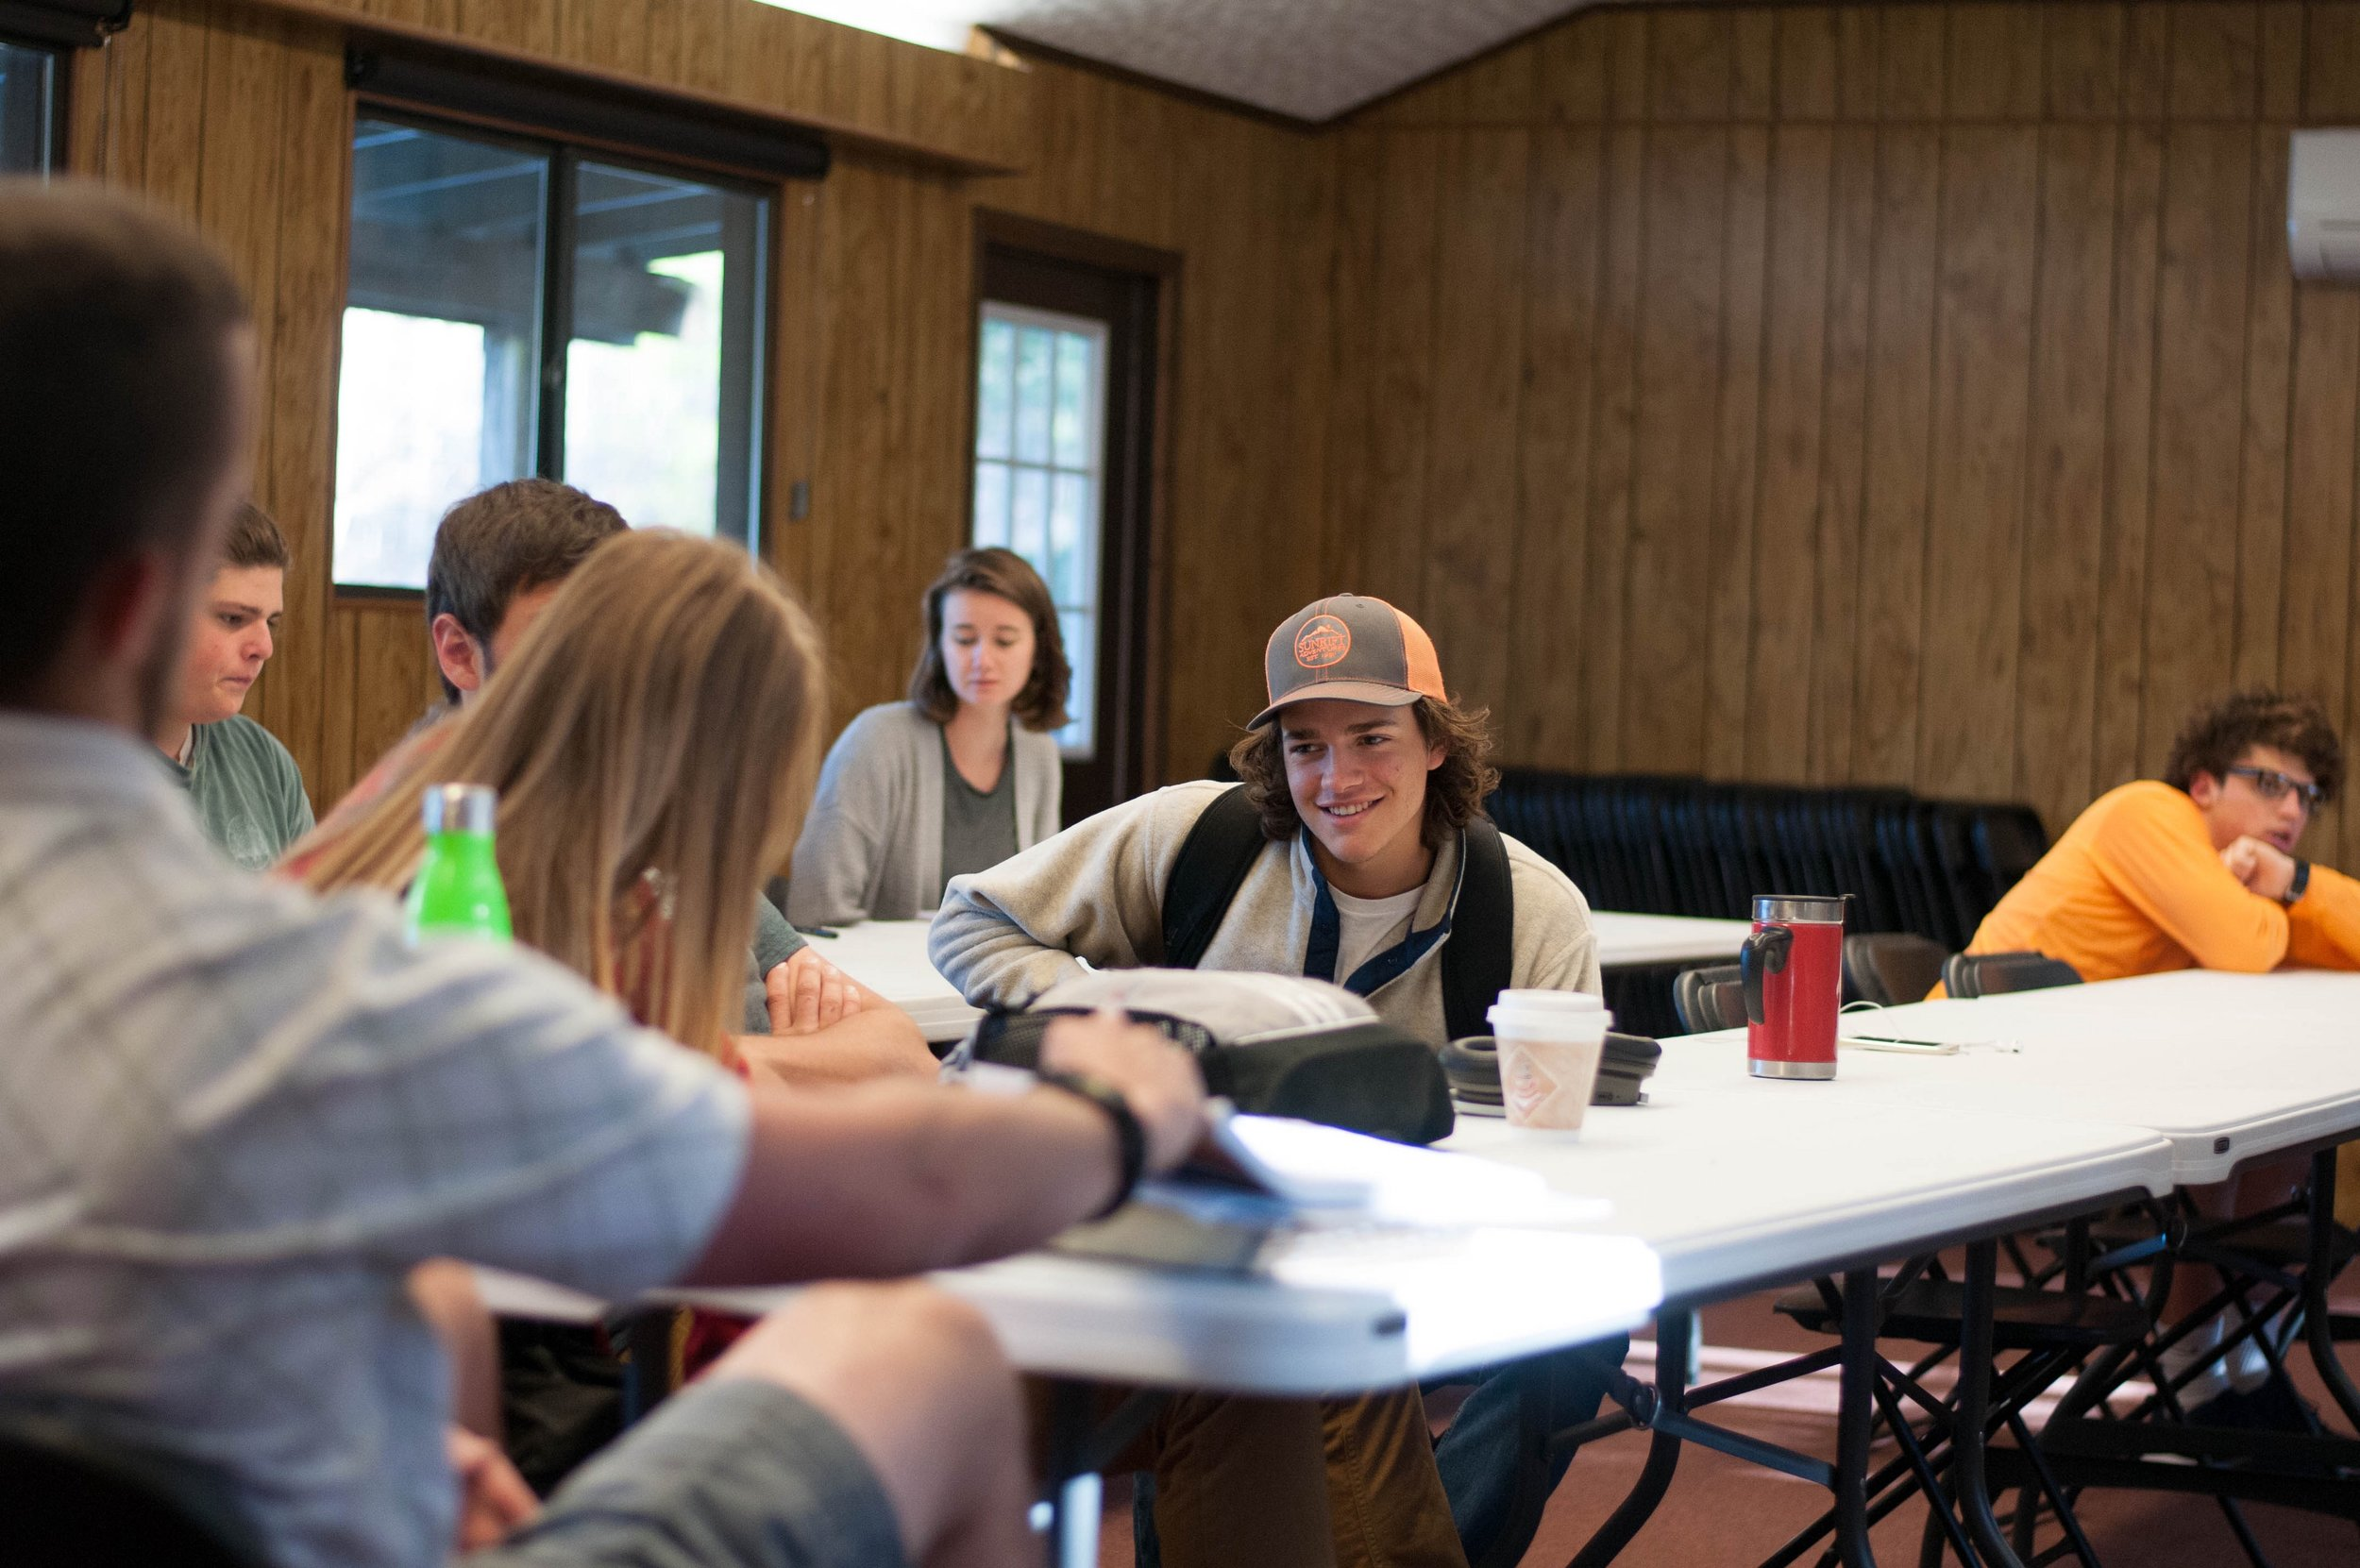 Students learning in one of their eleven classes that are fully accredited through Cairn University. Students graduate with 24 fully-transferable college credits as part of the Vox Bivium Gap Year School experience.